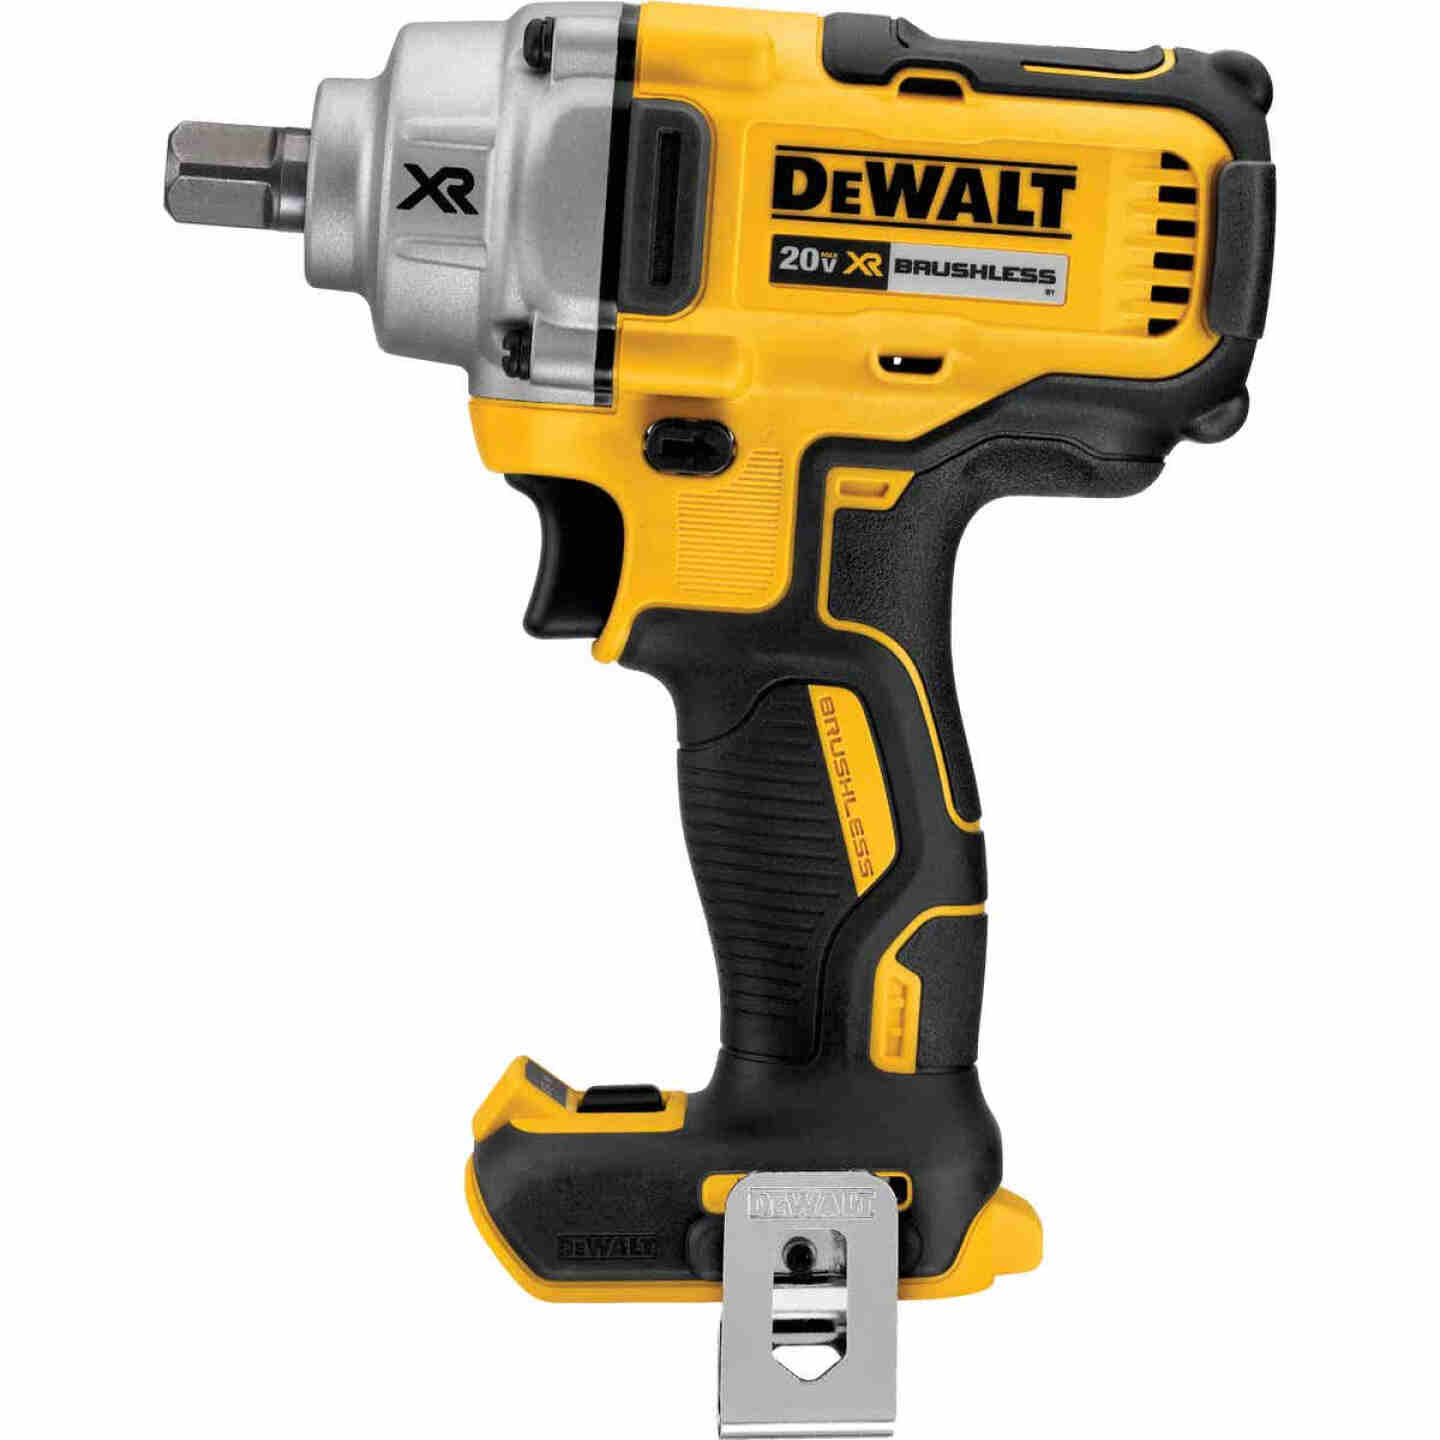 DeWalt 20 Volt MAX XR Lithium-Ion Brushless 1/2 In. Mid-Range Cordless Impact Wrench (Bare Tool) Image 1